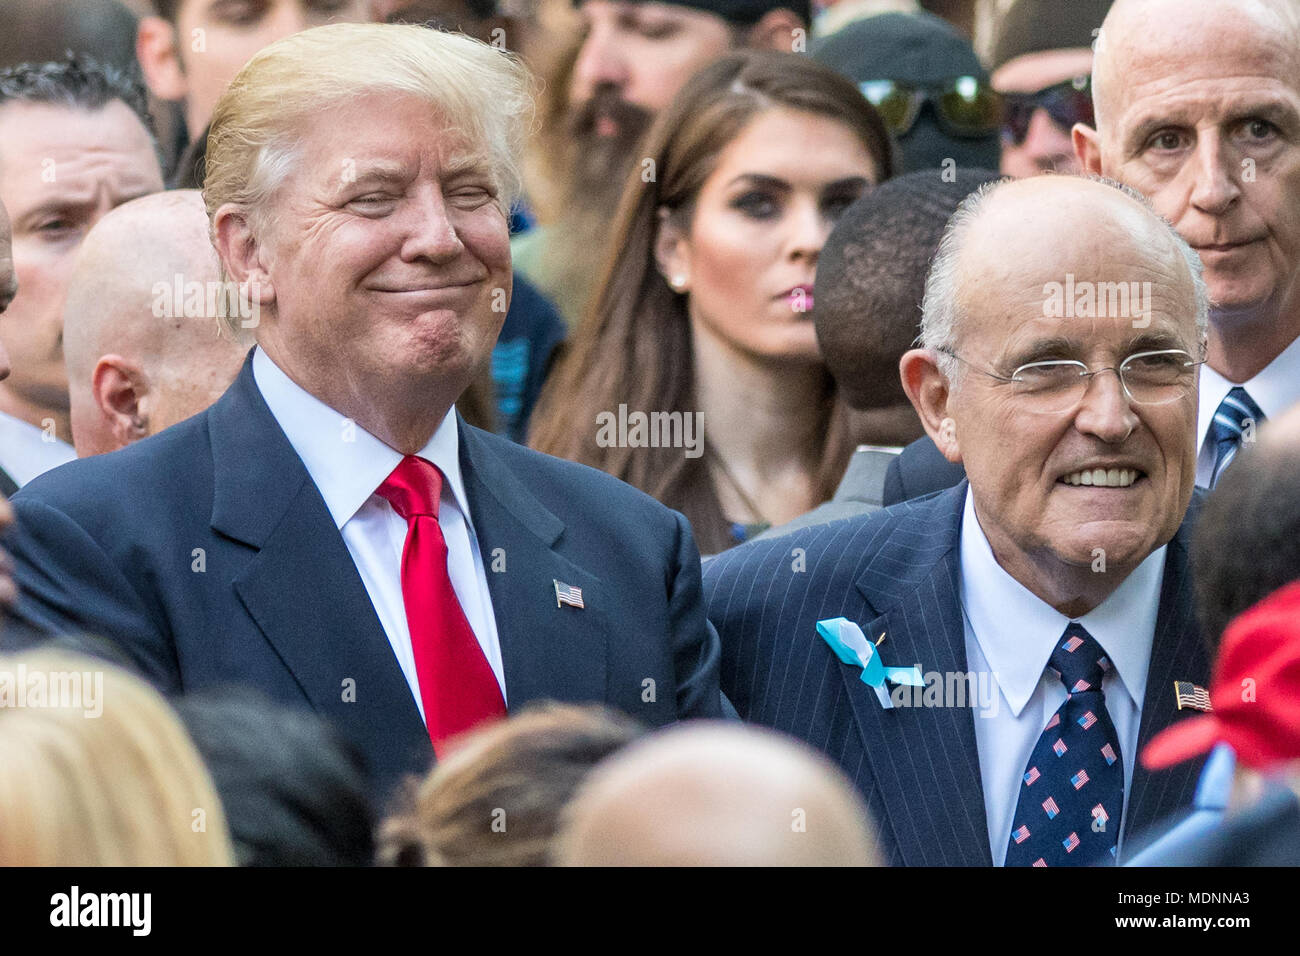 New York, USA, 11 September 2016.  US President Donald Trump greets supporters next to former New York Mayor Rudolph Giuliani in this file photo from 9/11/2016 at the September 11 Memorial in New York City.  Giuliani will join Trump's legal team in an effort to resolve the special counsel's Russia inquiry, it was announced on April 19, 2018. Photo by Enrique Shore / Alamy Stock Photo Stock Photo